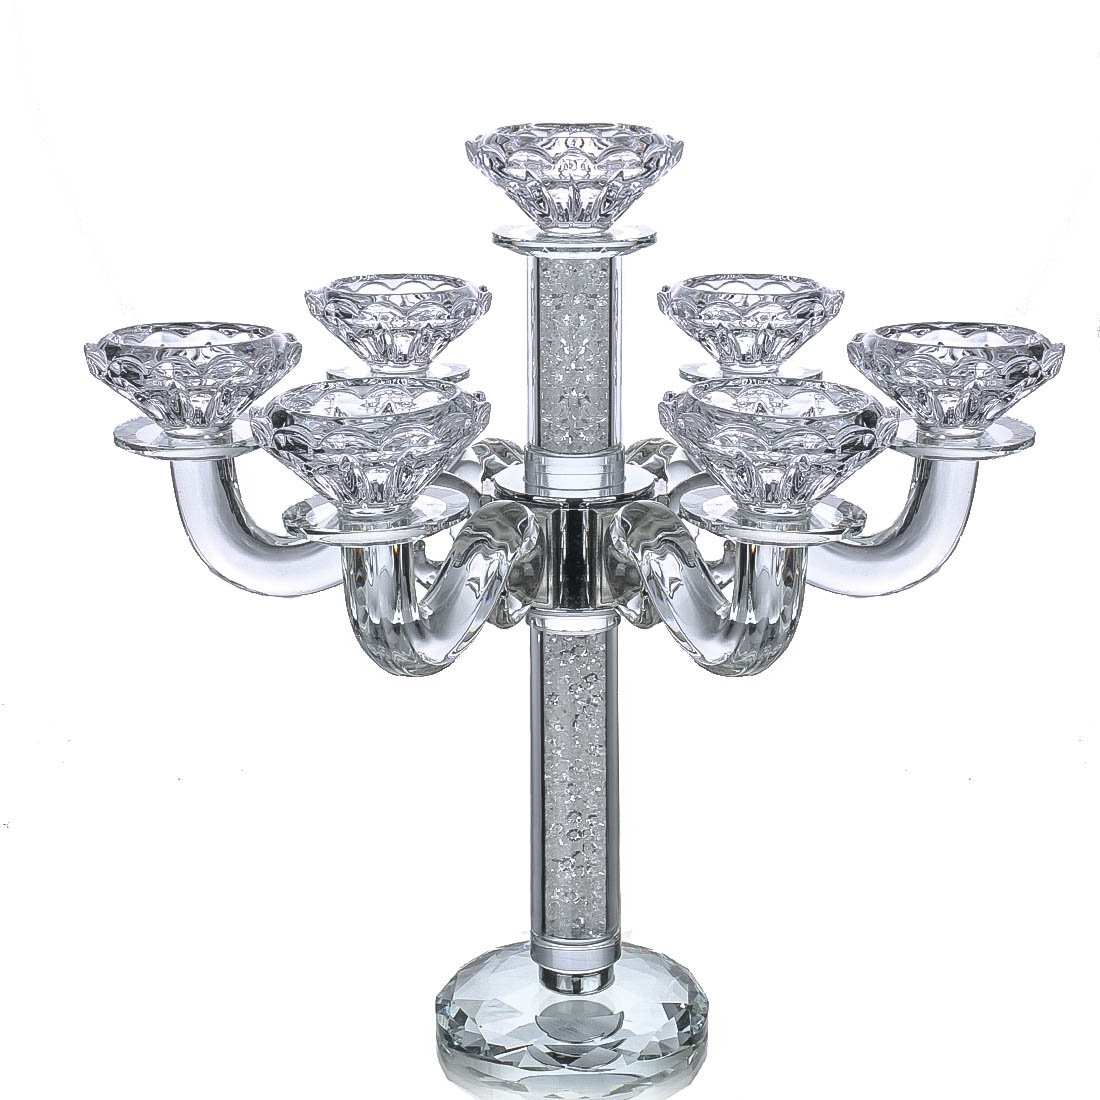 3a7cb332f Amazon.com  Qf 7-Arm Crystal Candelabra-Classic Elegant Design  Home    Kitchen